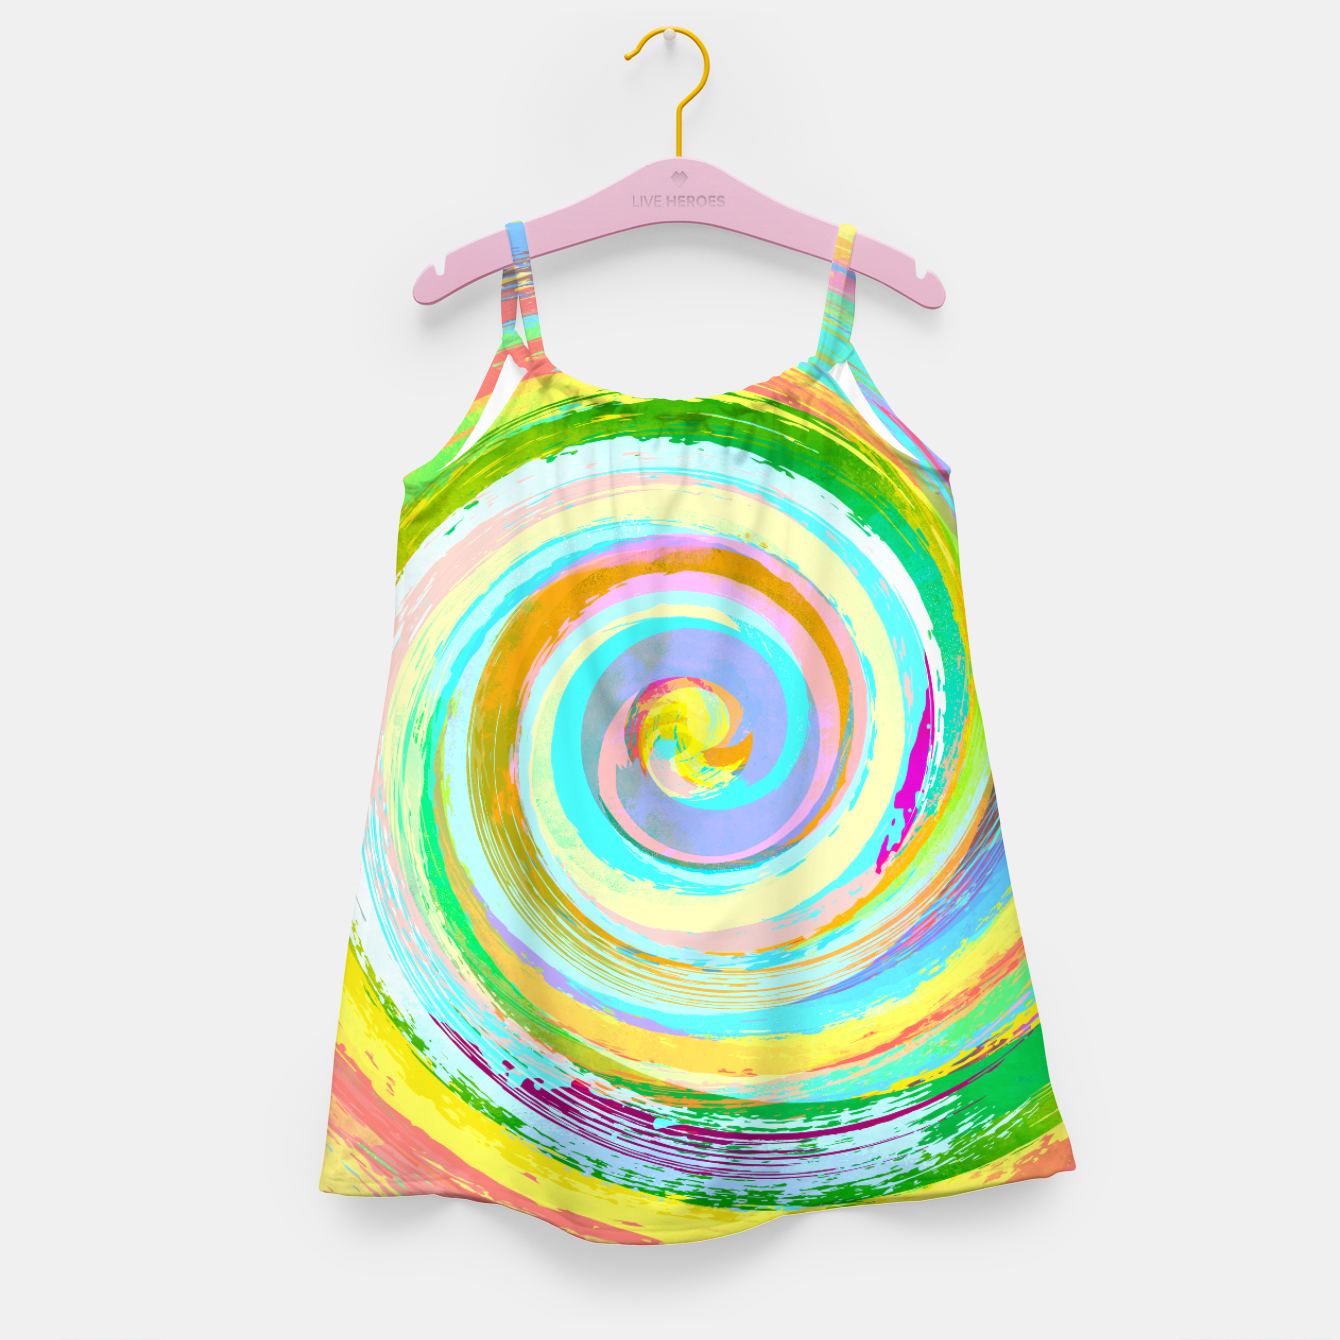 Foto Spiral and colors Robe de fille - Live Heroes